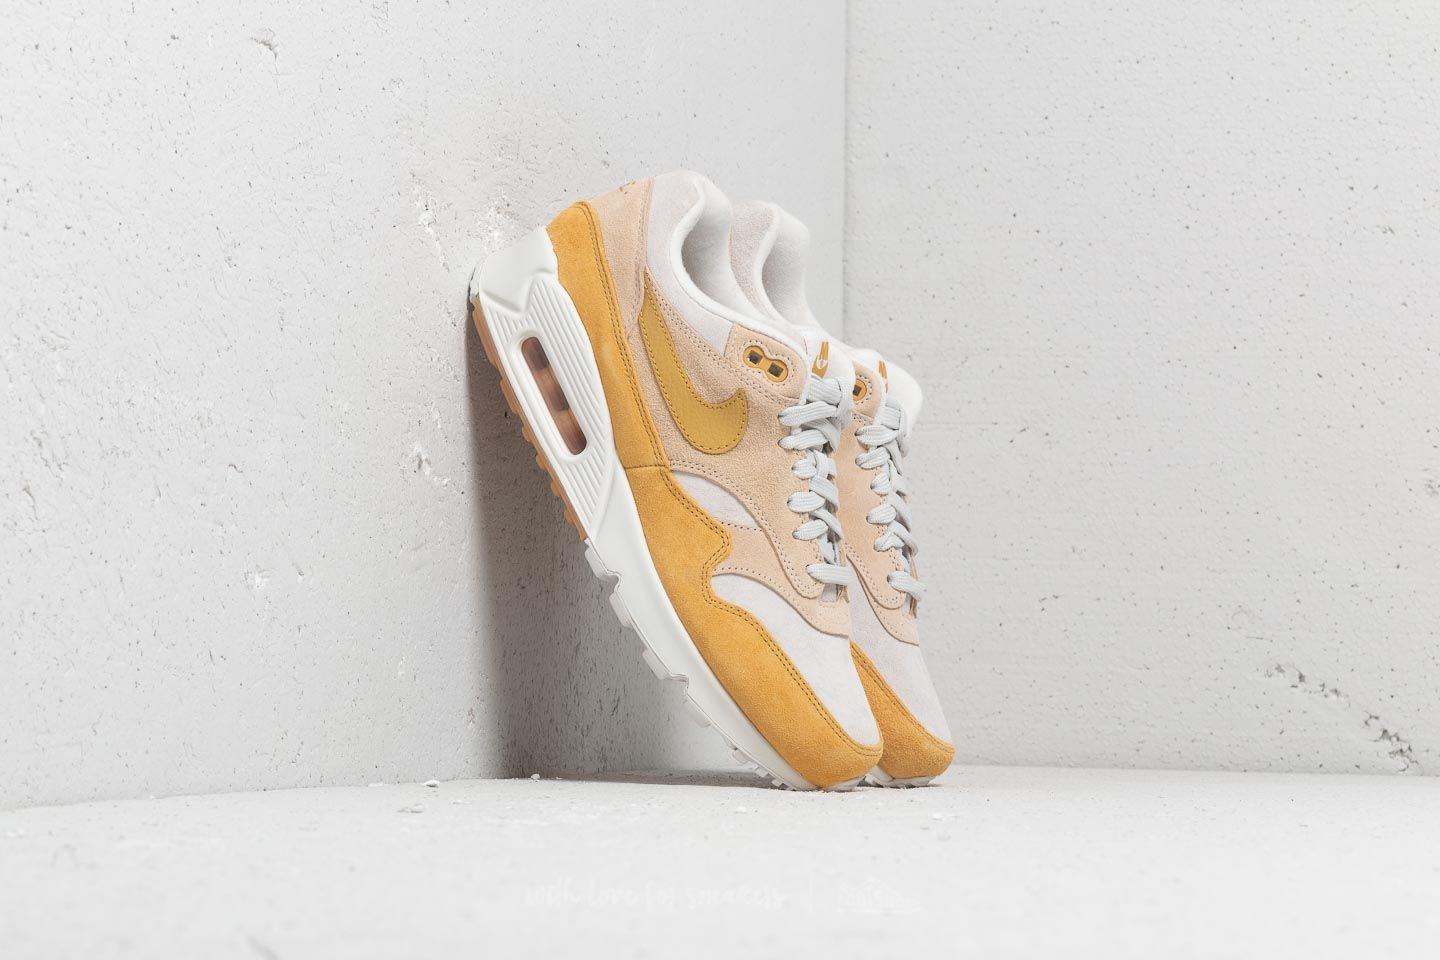 competitive price a8b5b 6857a Nike Air Max 90 1 W. Guava Ice  Wheat Gold